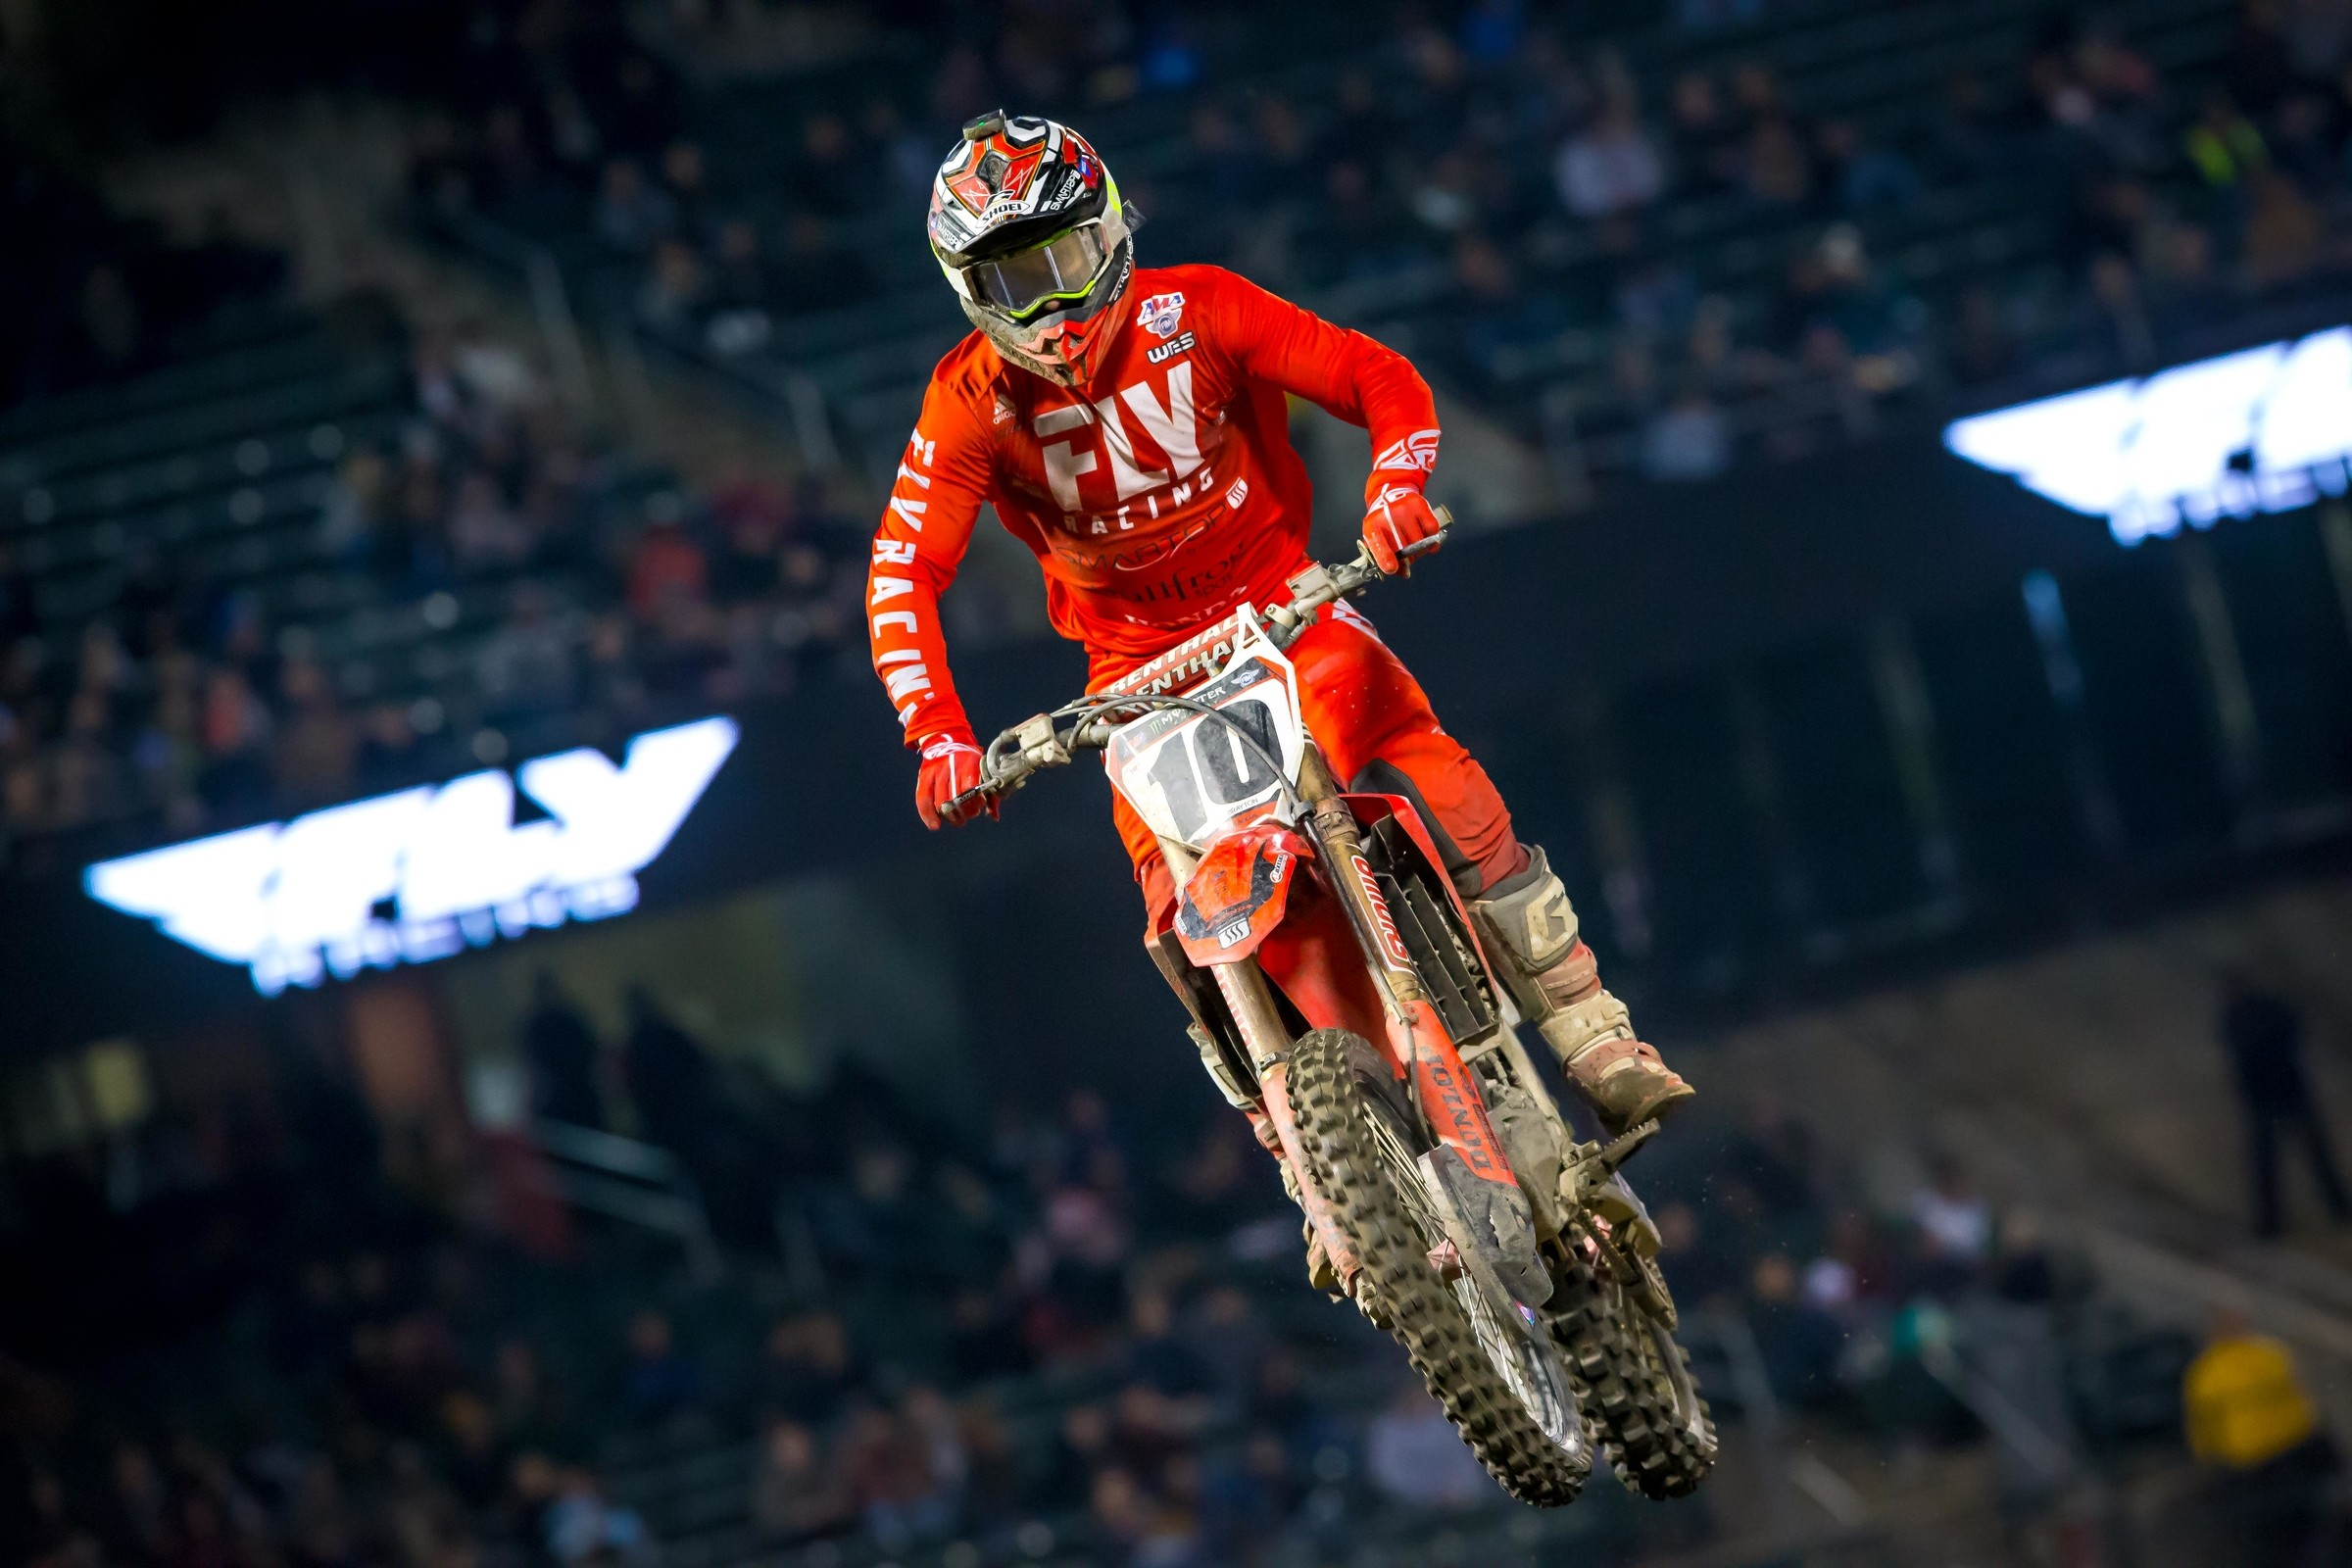 Justin Brayton Thumb Injury Update